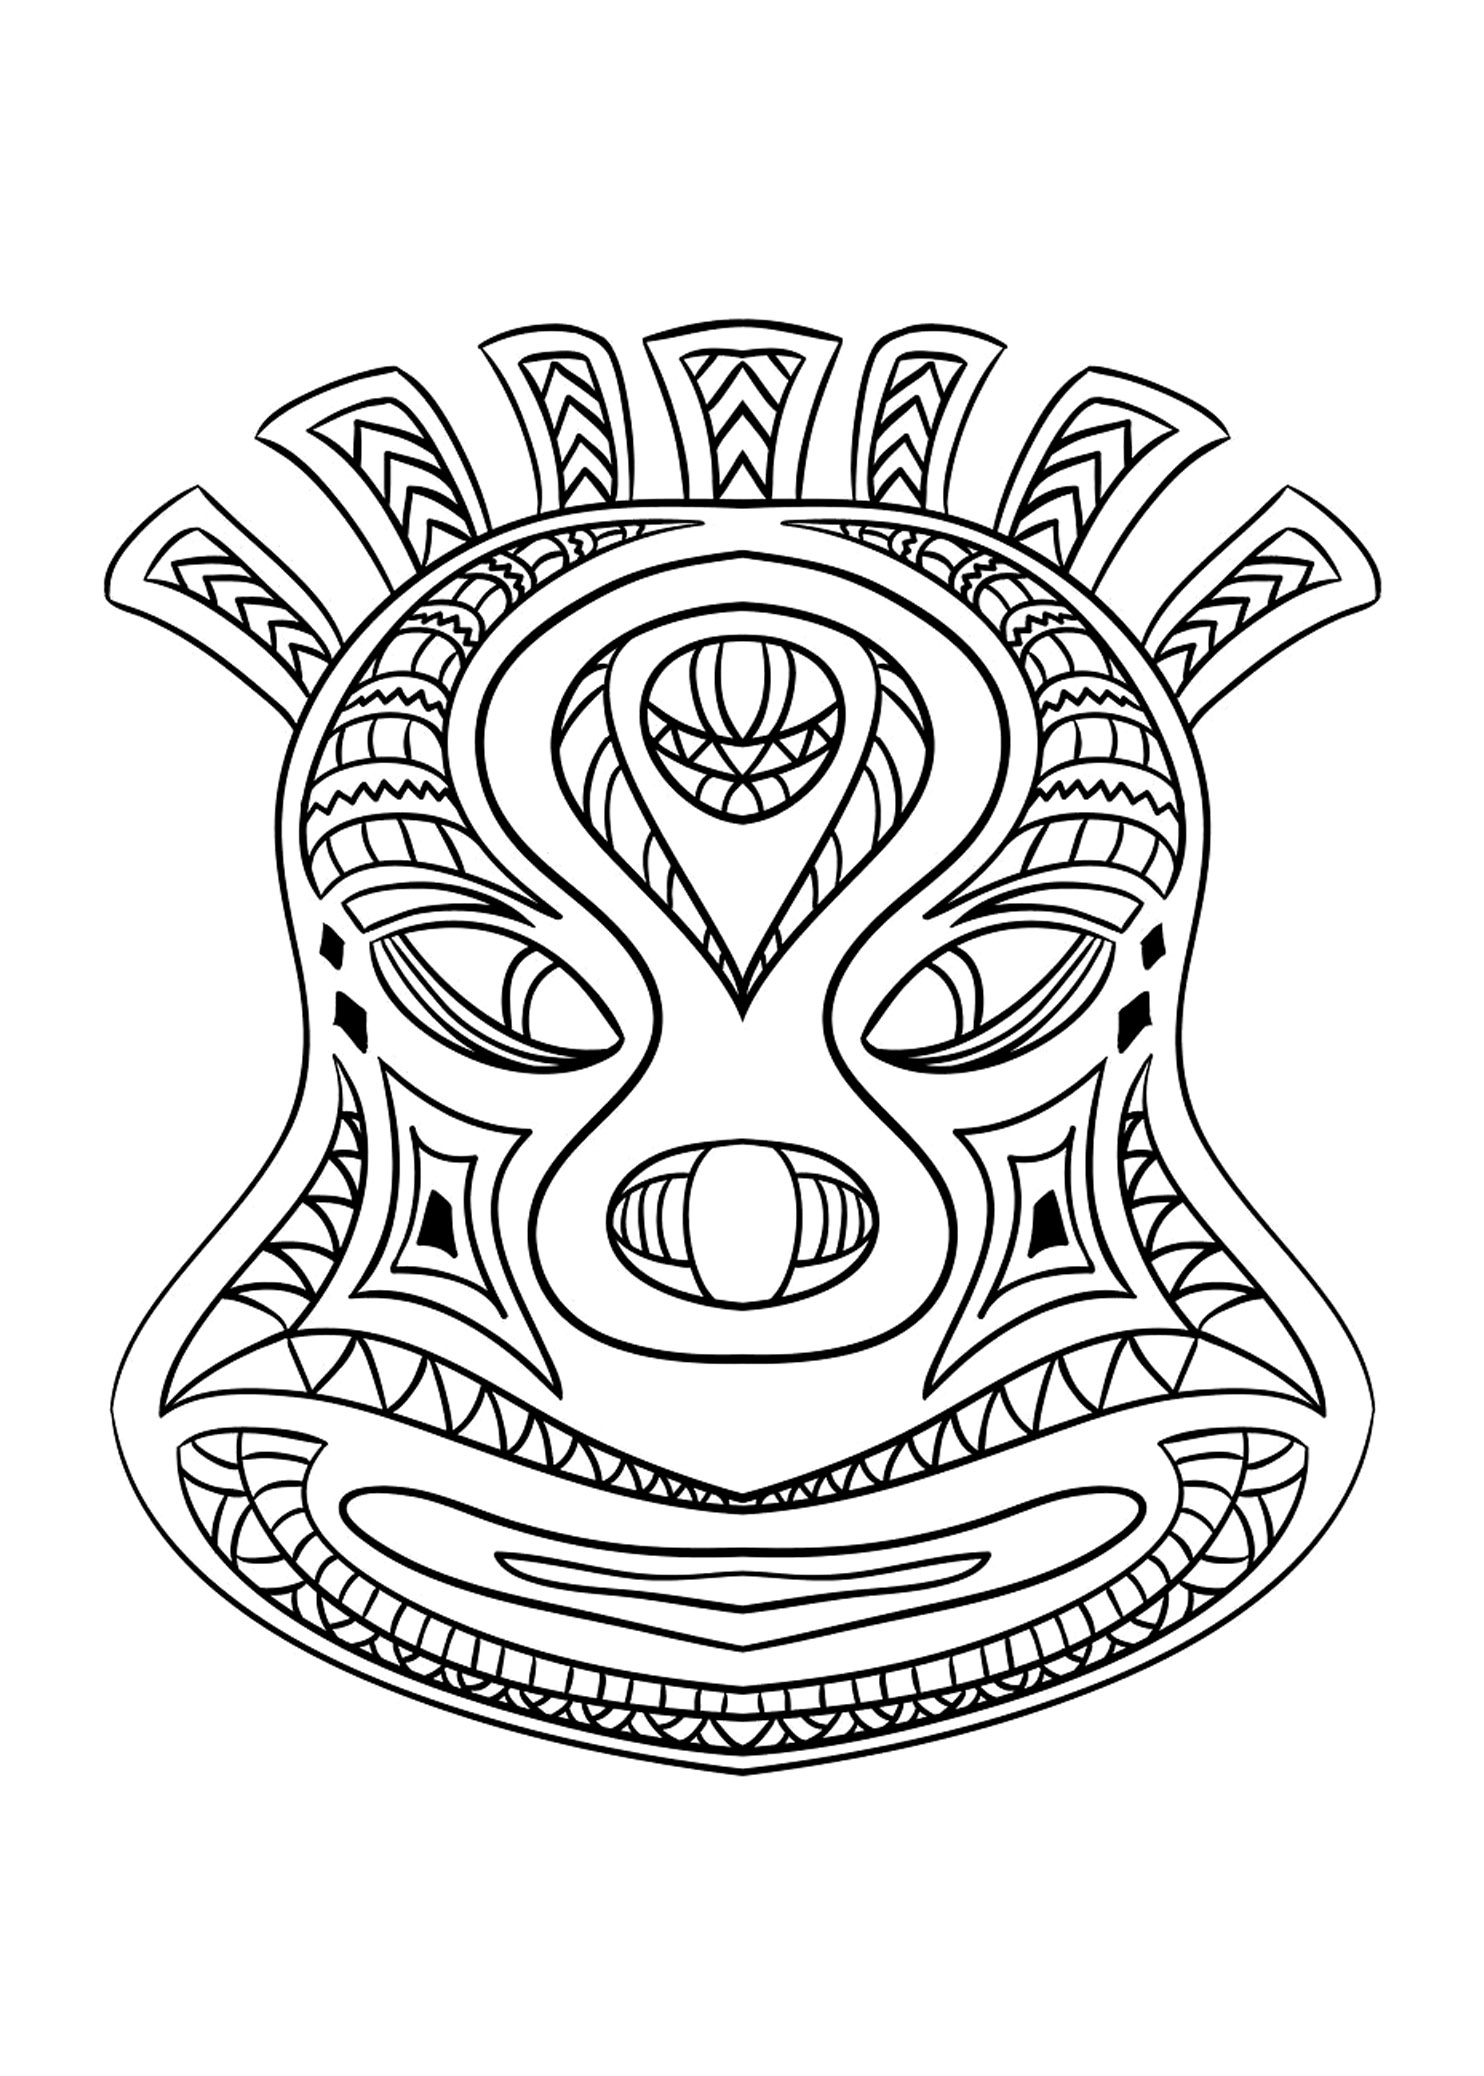 african mask coloring sheets african mask africa adult coloring pages page 2 mask coloring african sheets